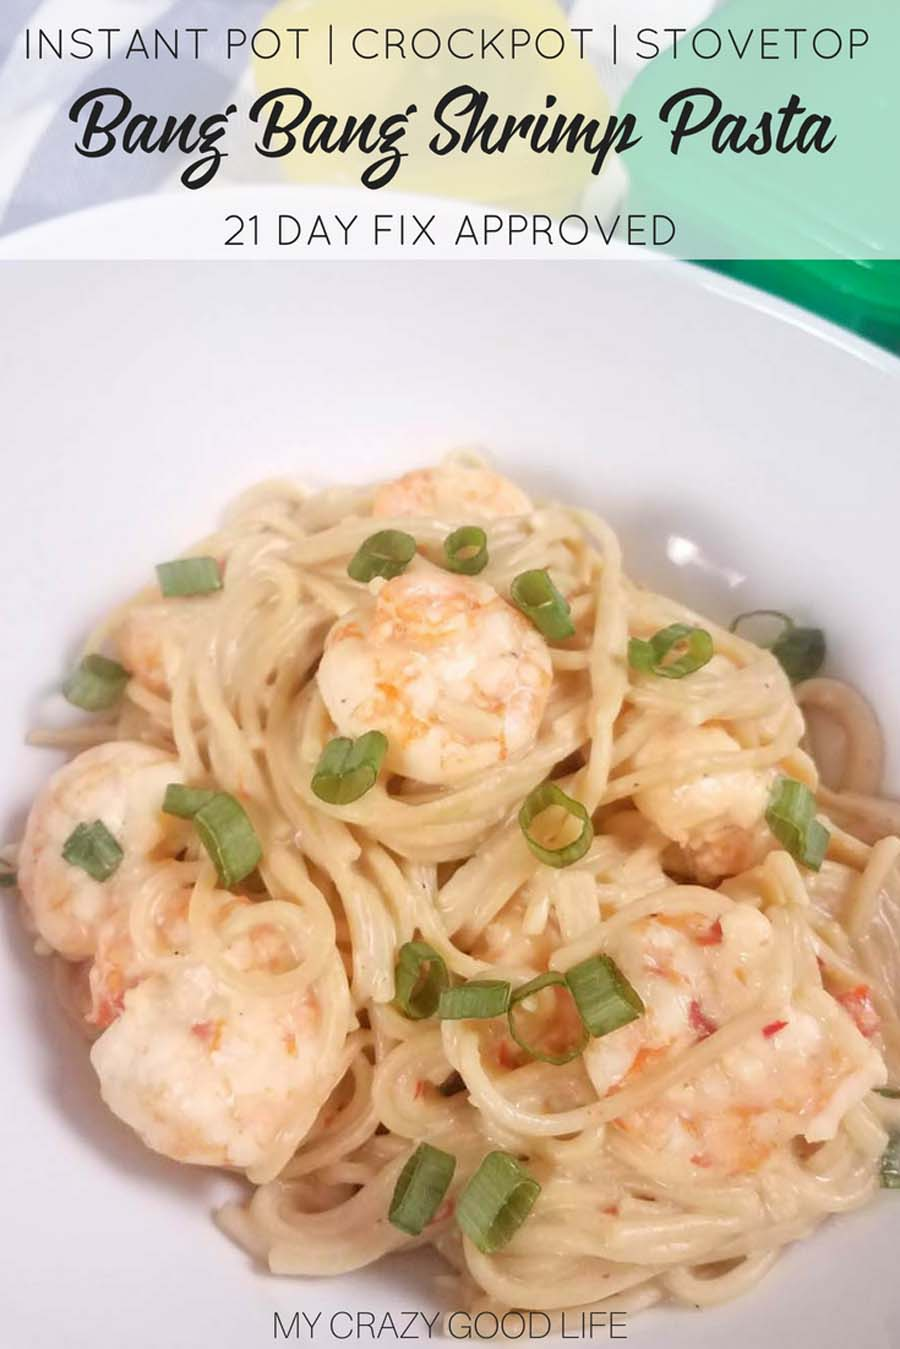 This healthy Bang Bang Shrimp pasta will satisfy your craving without all of the calories! With just the right amount of sweet and spicy, this is an healthy Instant Pot Chinese food recipe for the entire family. 21 Day Fix friendly, a perfect 2B Lunch idea when paired with extra veggies.#21dayfix #healthyrecipe #2bmindset #beachbody #healthydinner #instantpot #slowcooker